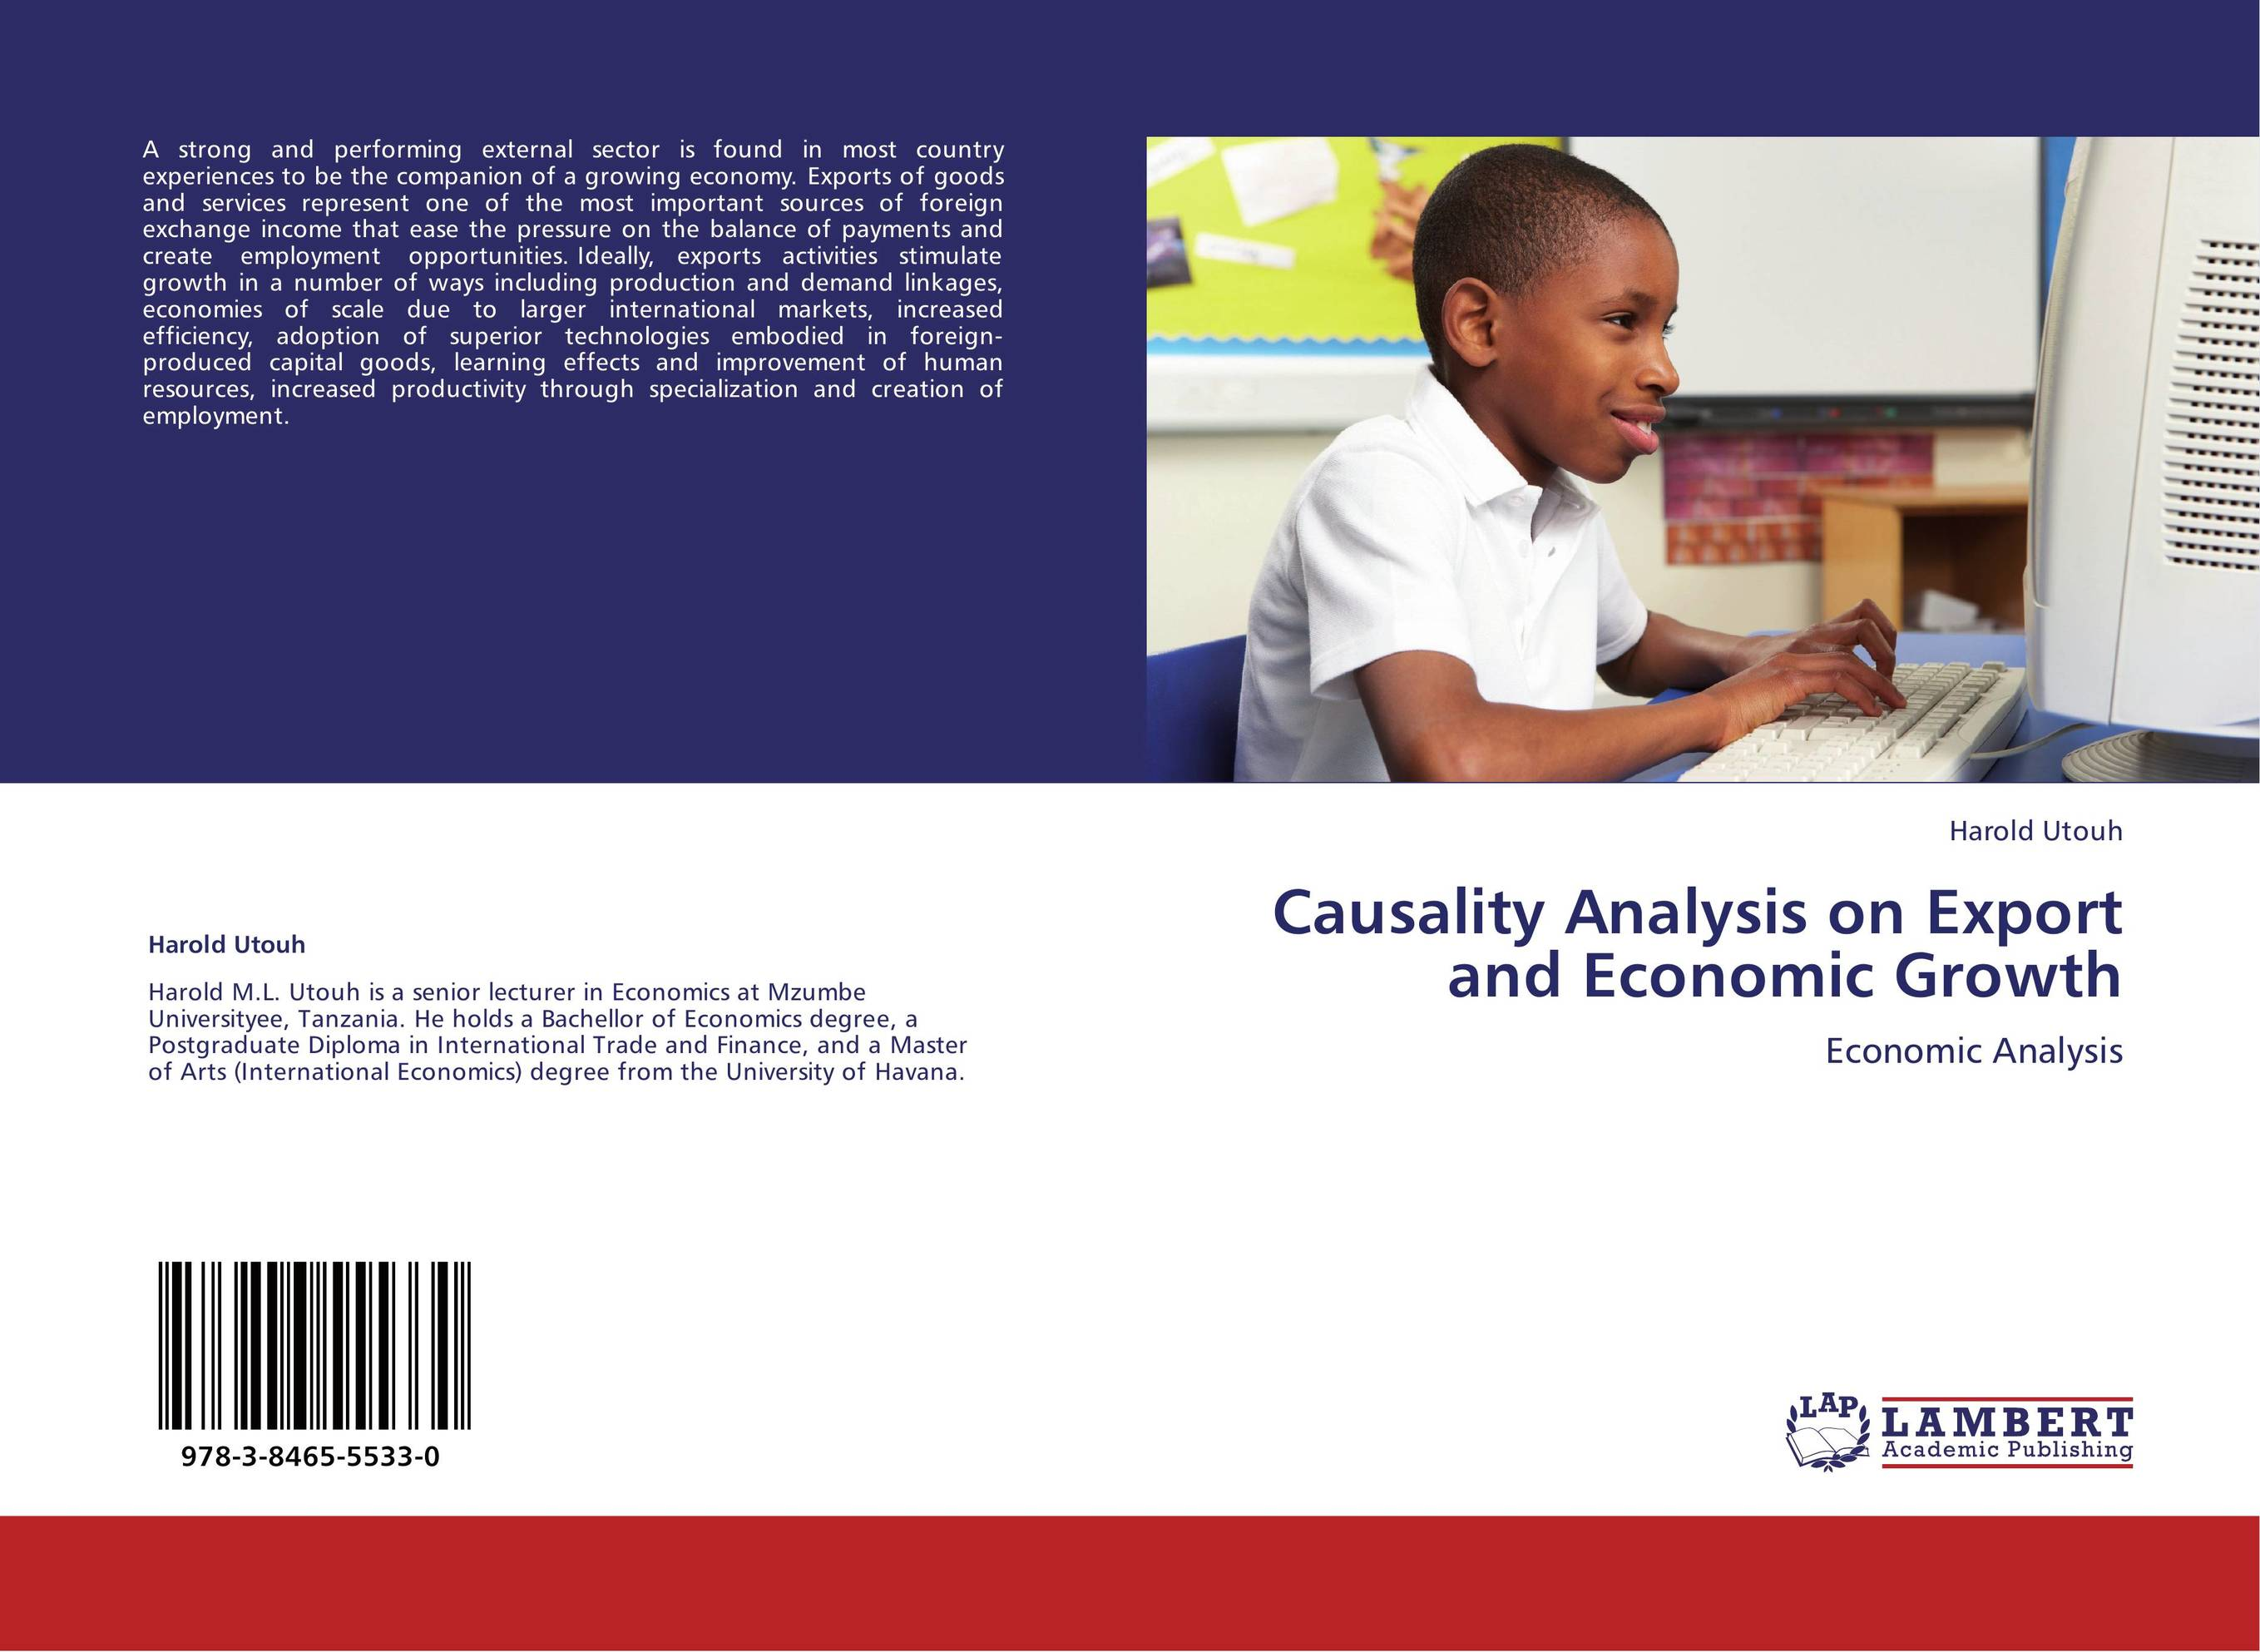 technology transfer and economic growth Estimating the impact of arms trade on economic growth requires an understanding of how the transfer of military technology affects the growth rate the first attempt to link growth theory to military spending was made by lim (1983), who incorporated the defense expenditure into the.